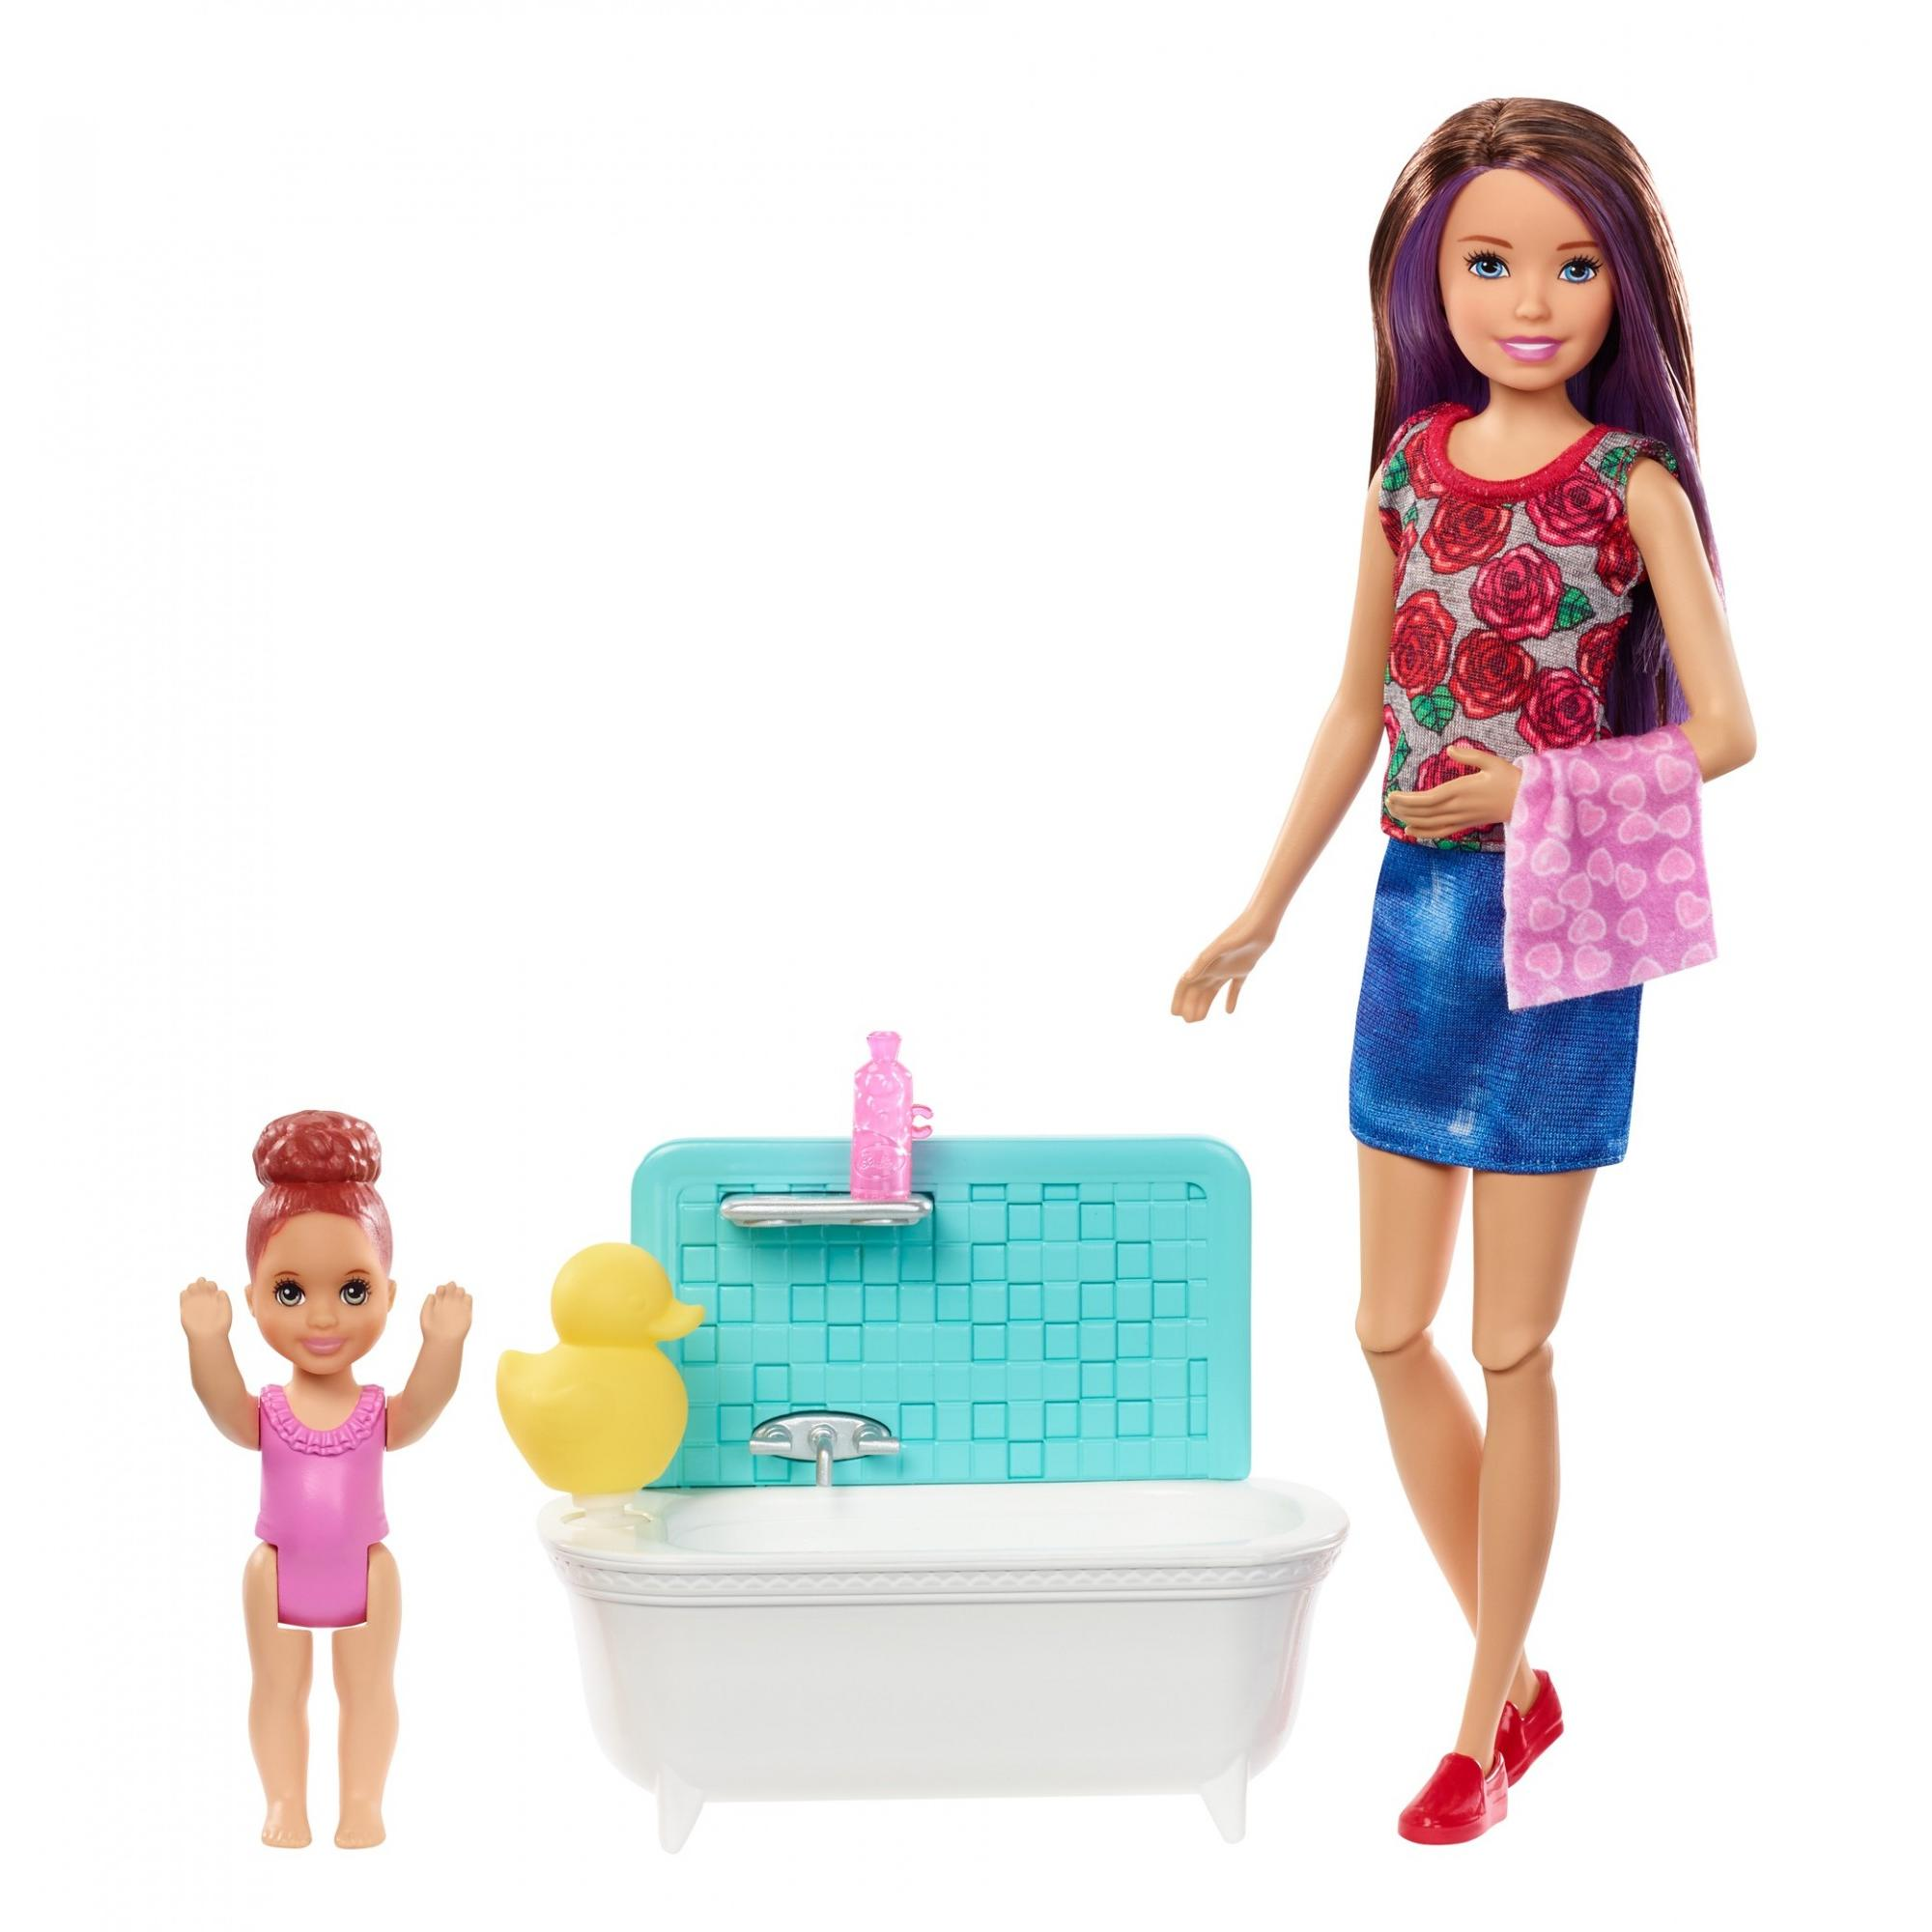 Barbie Skipper Babysitters Inc Bath Time Playset, Brunette